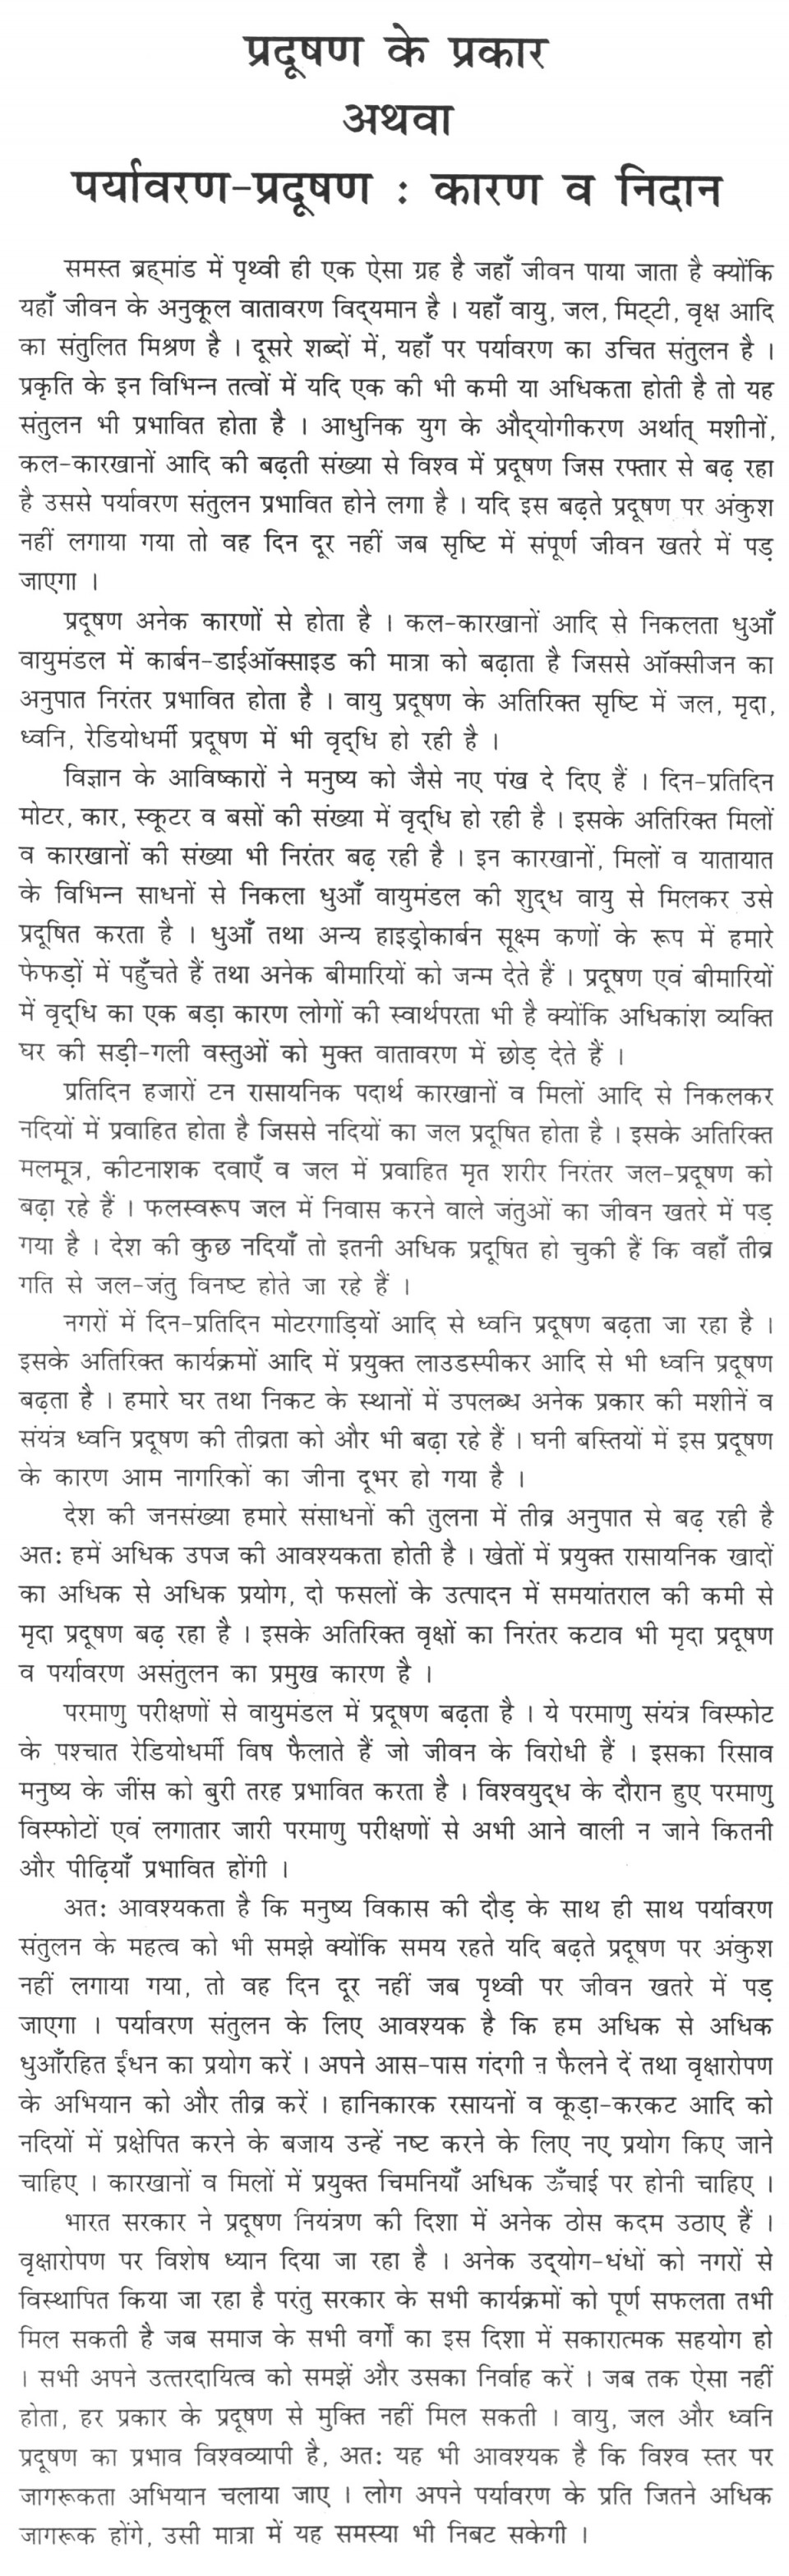 014 Good Habits Essay In Hindi Exceptional Healthy Eating Reading Is A Habit 960